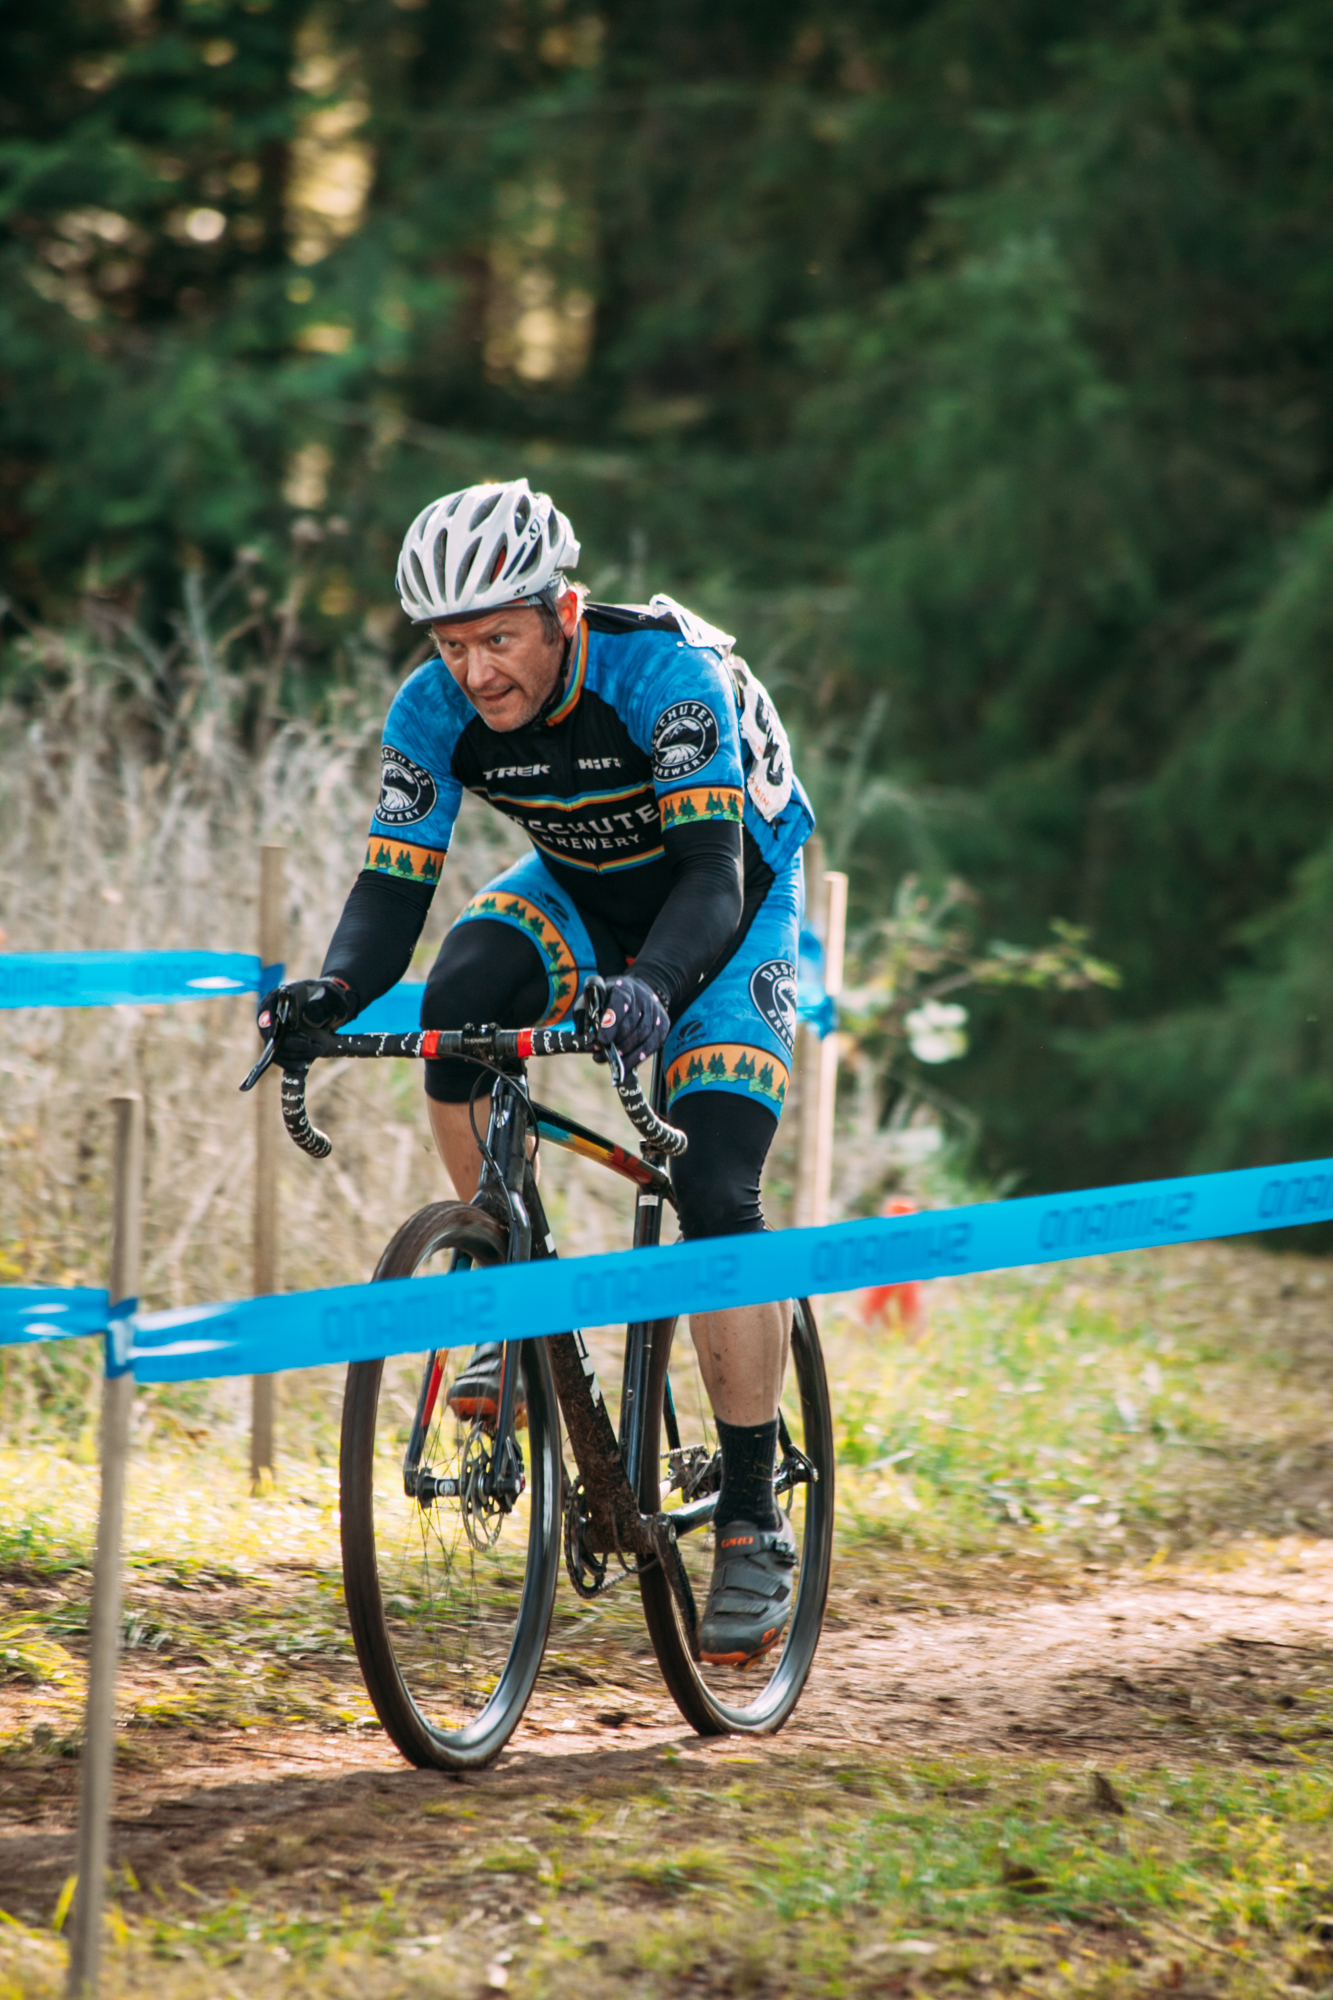 Cyclocross18_CCCX_RainierHS-162-mettlecycling.jpg